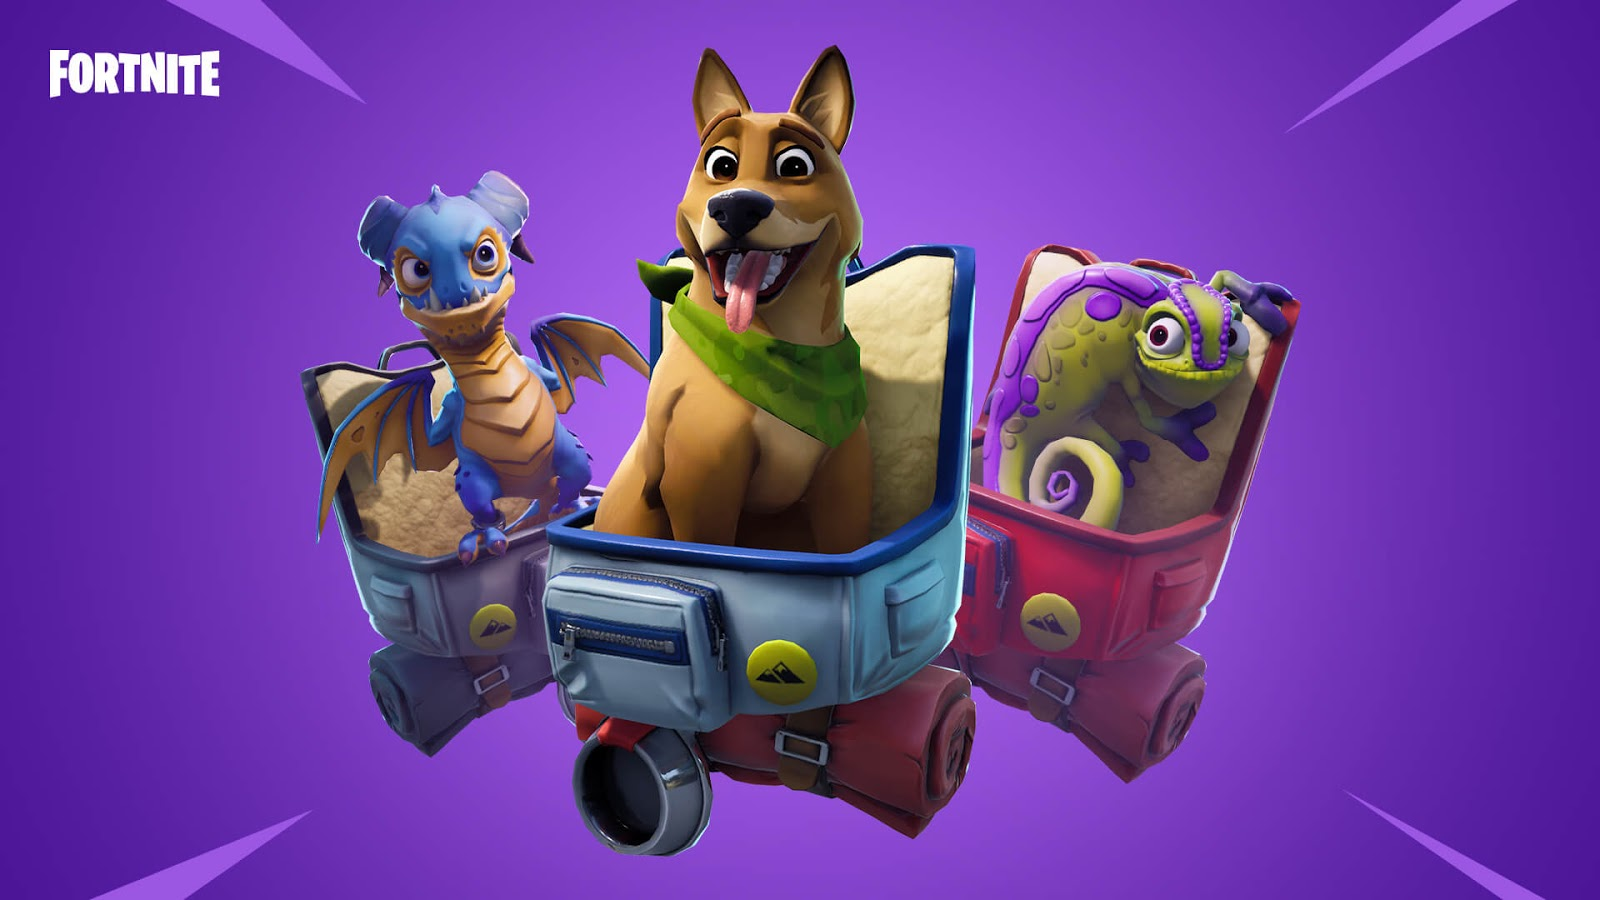 Fortnite V6.00 Patch Notes: Pets, New Island Areas, And More